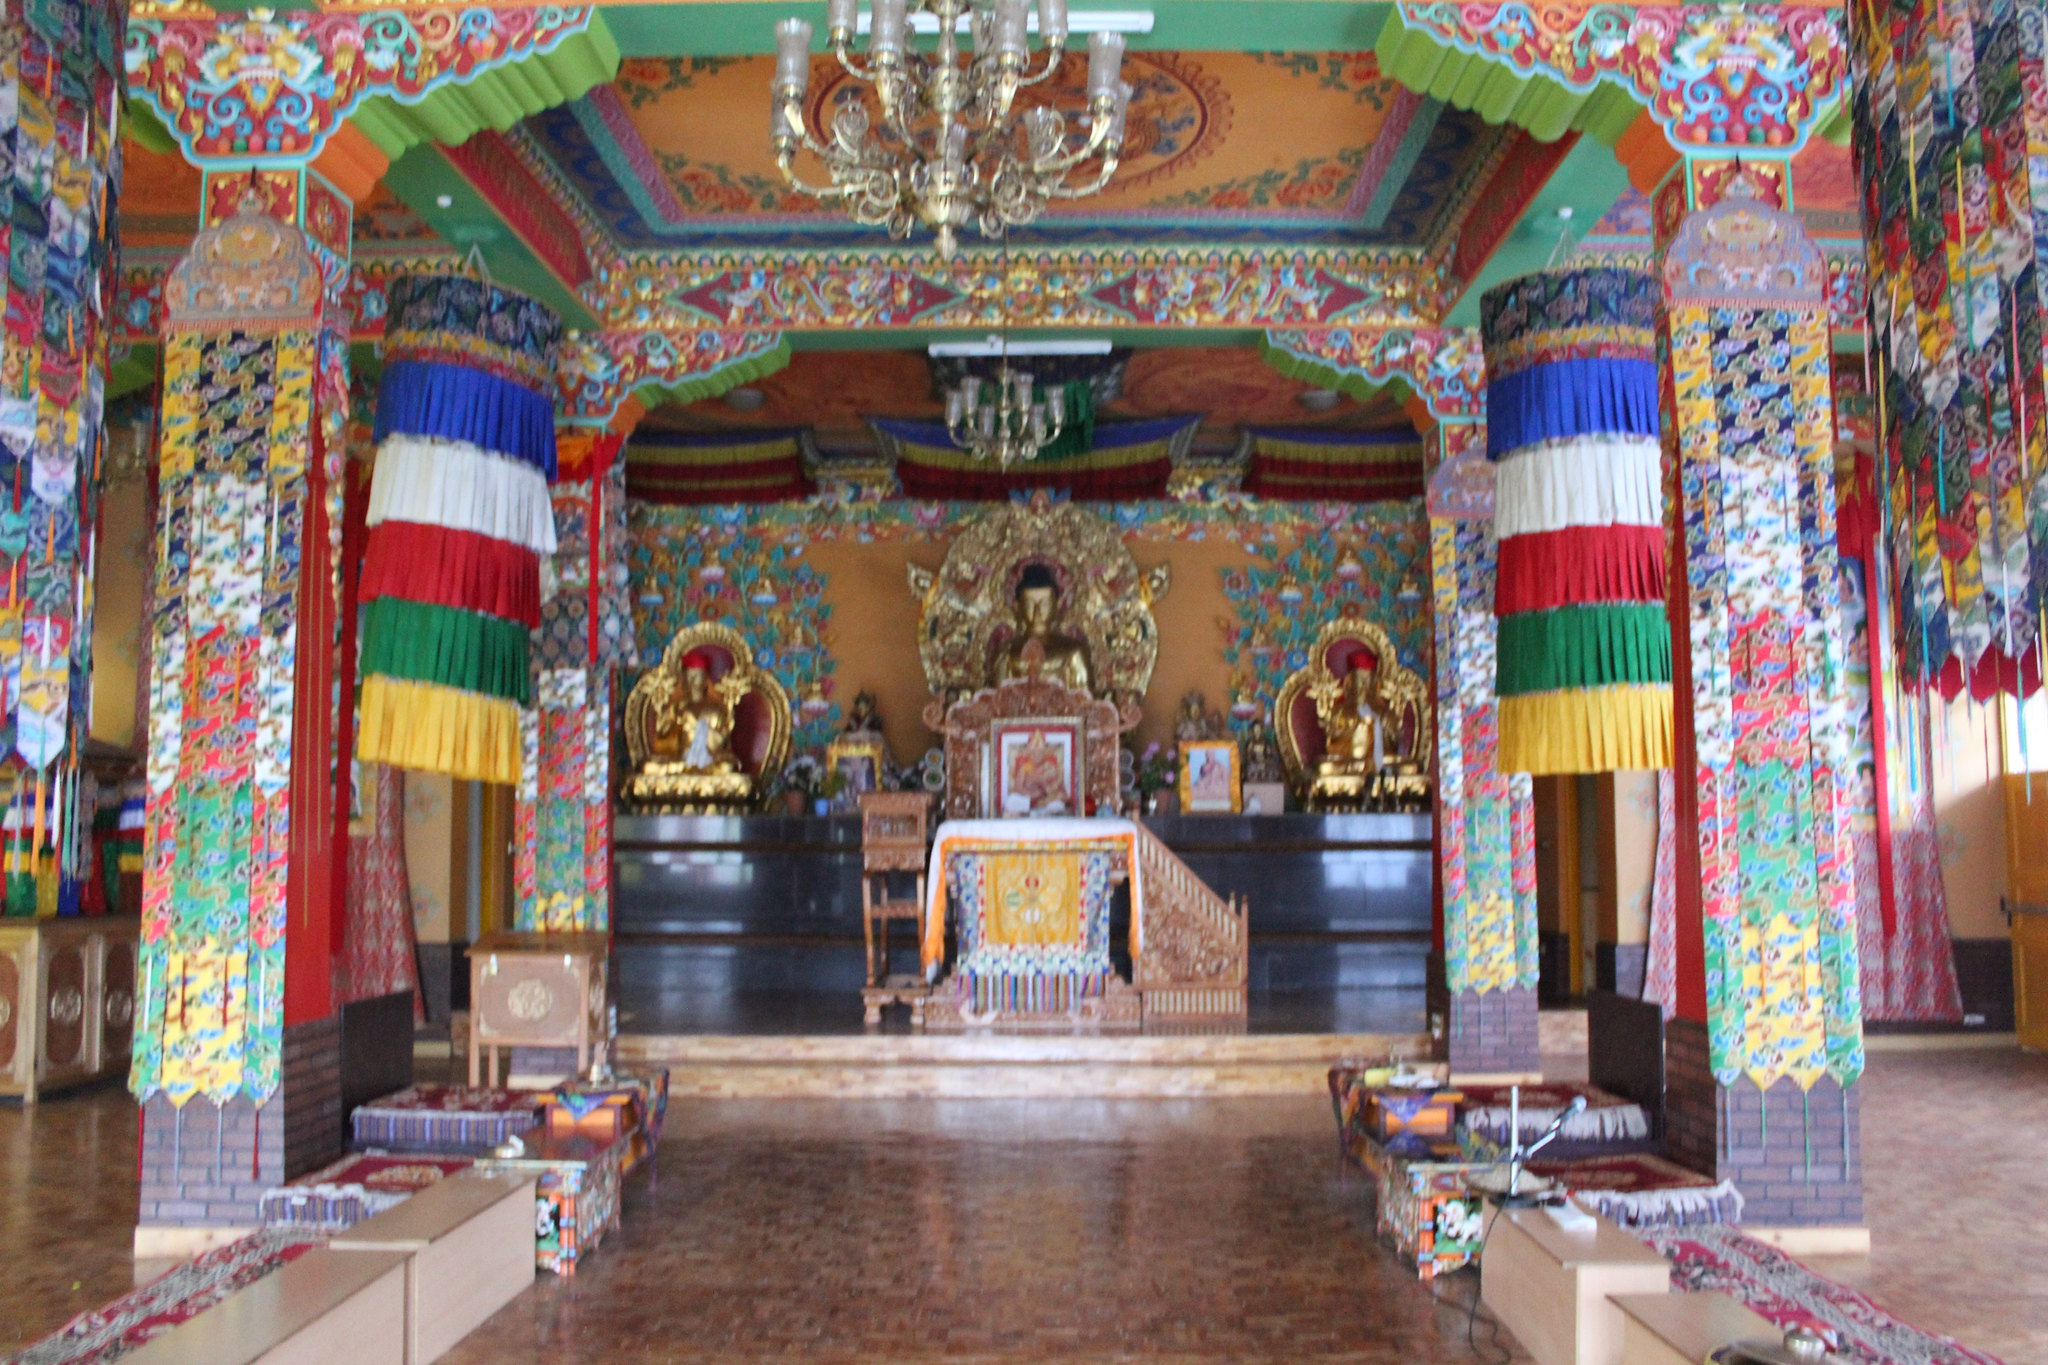 Inside the monastery in Kaza